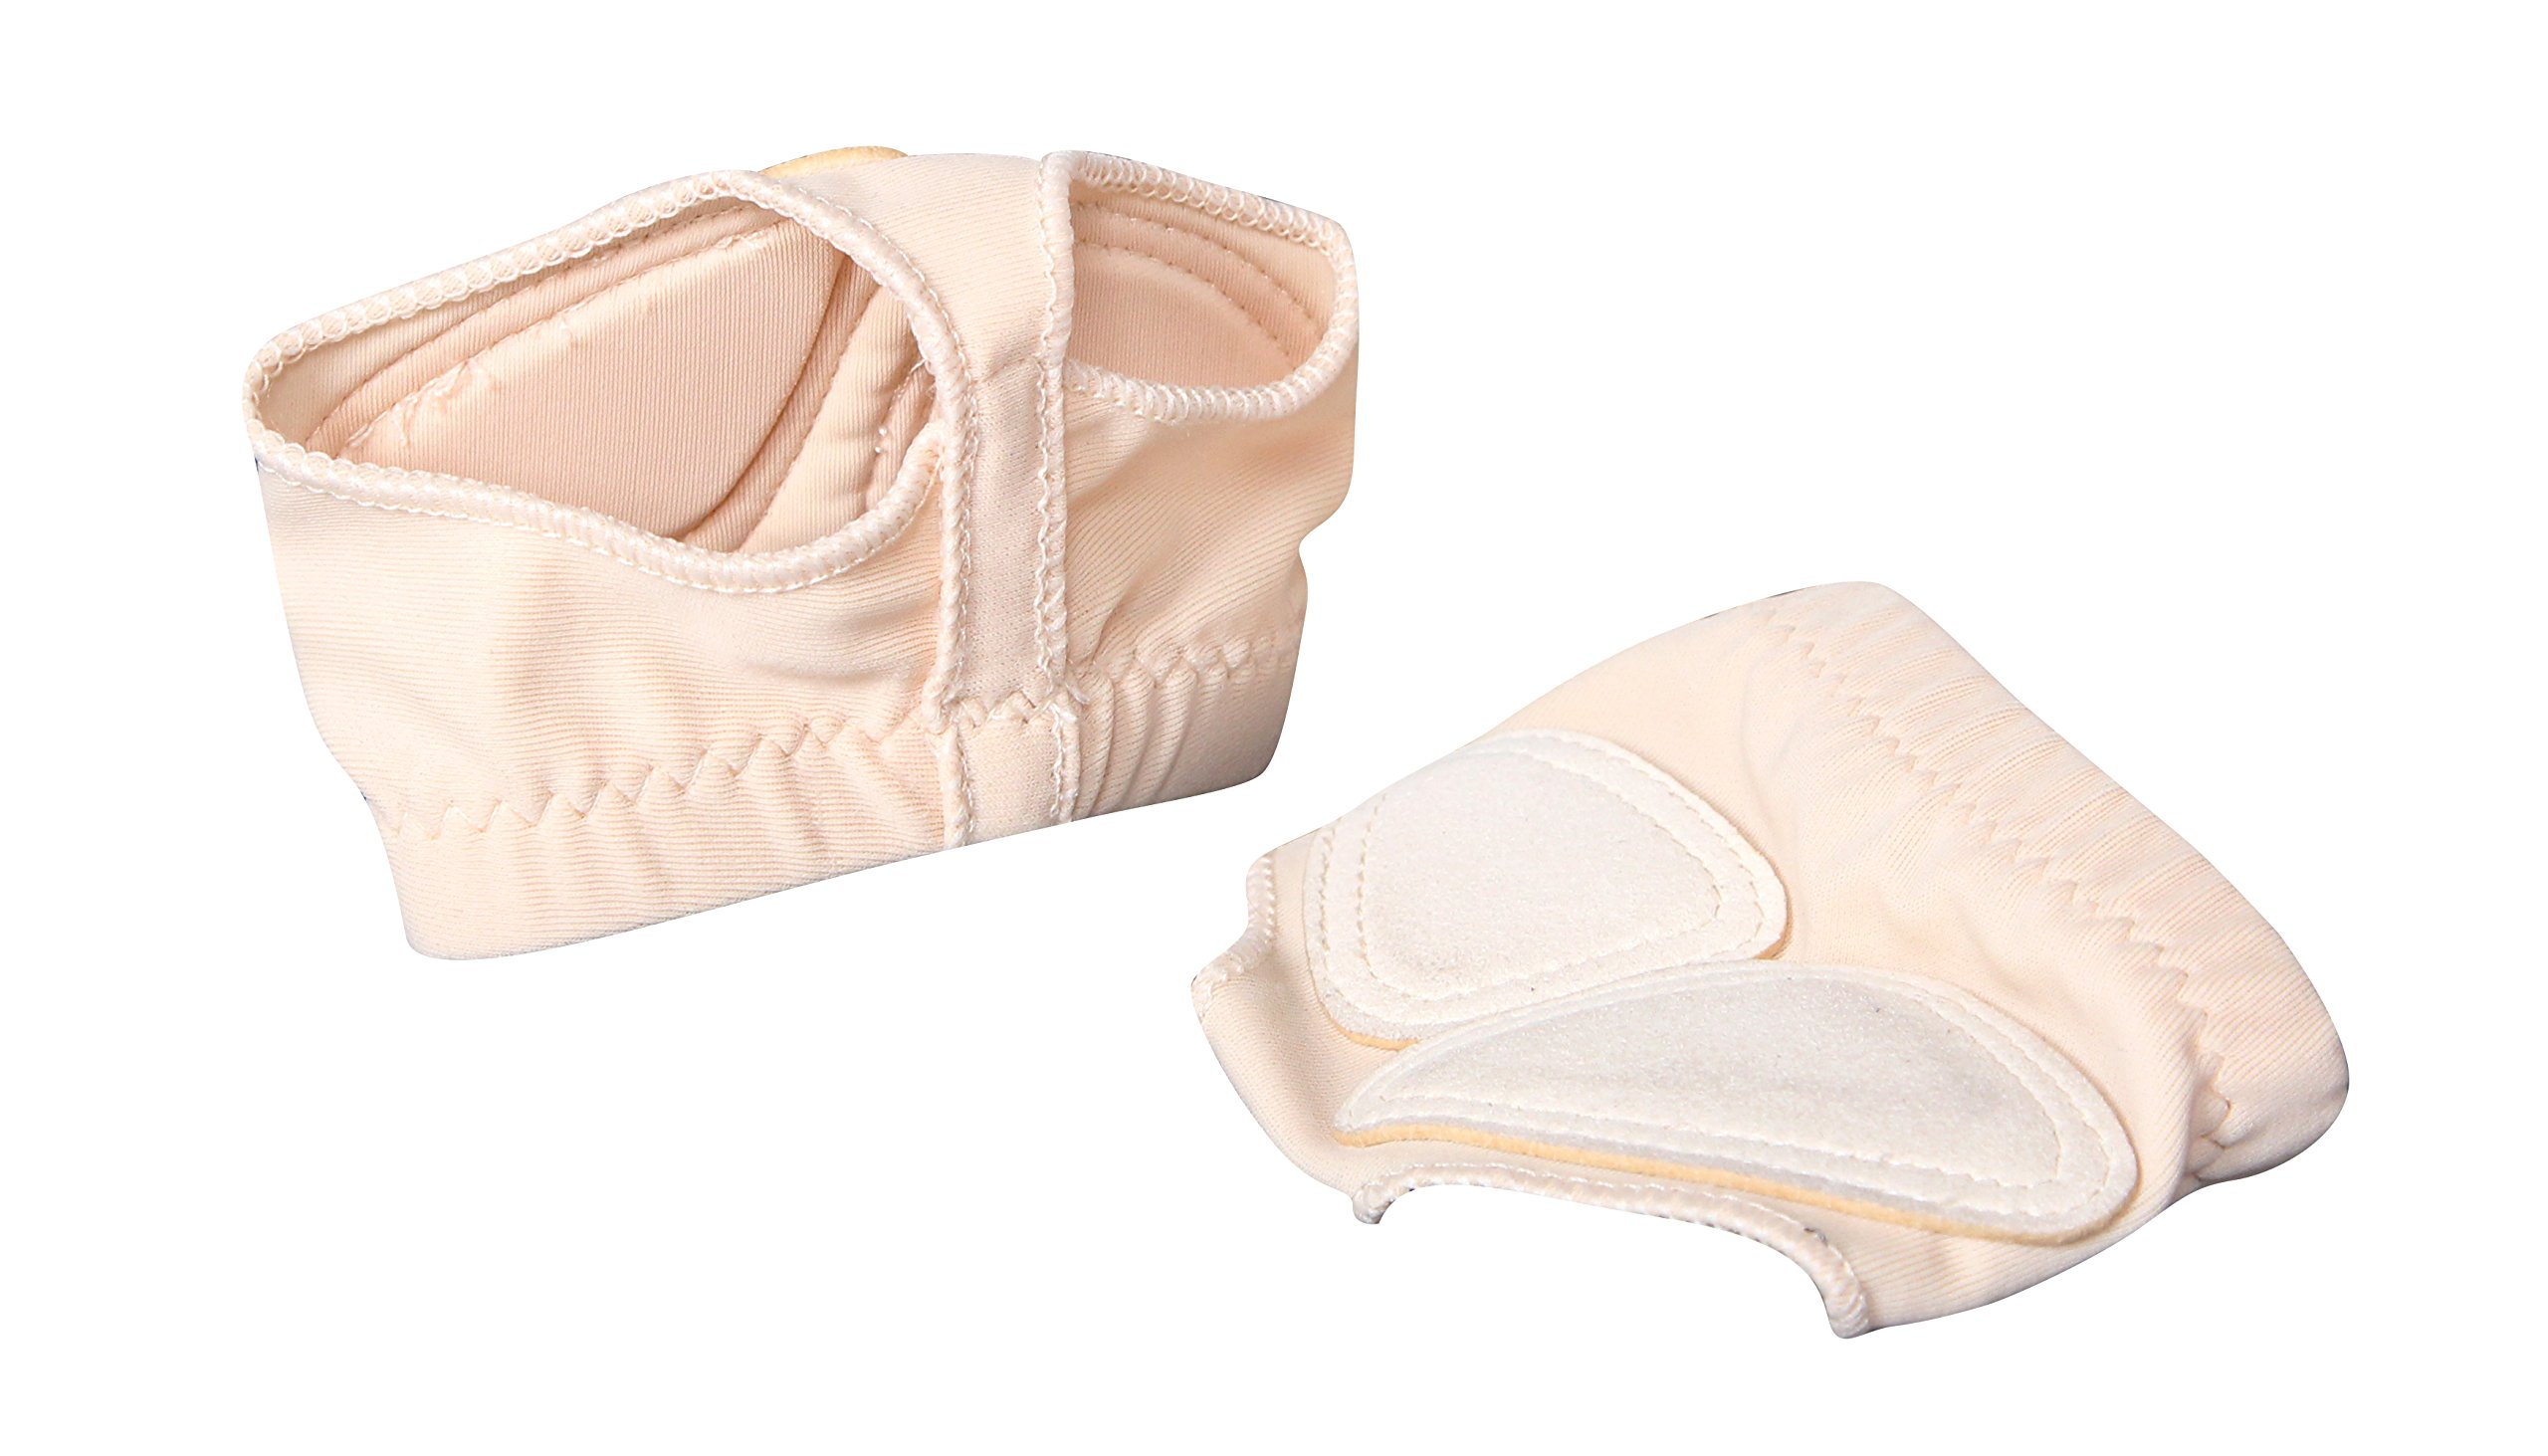 TOFERN Unisex 2 Pairs Lyrical Yoga Ballet Latin Belly Dance Half Sole Protection Bare Foot Thong Toe Pad Dance Paw Shoes Fitness, Beige3